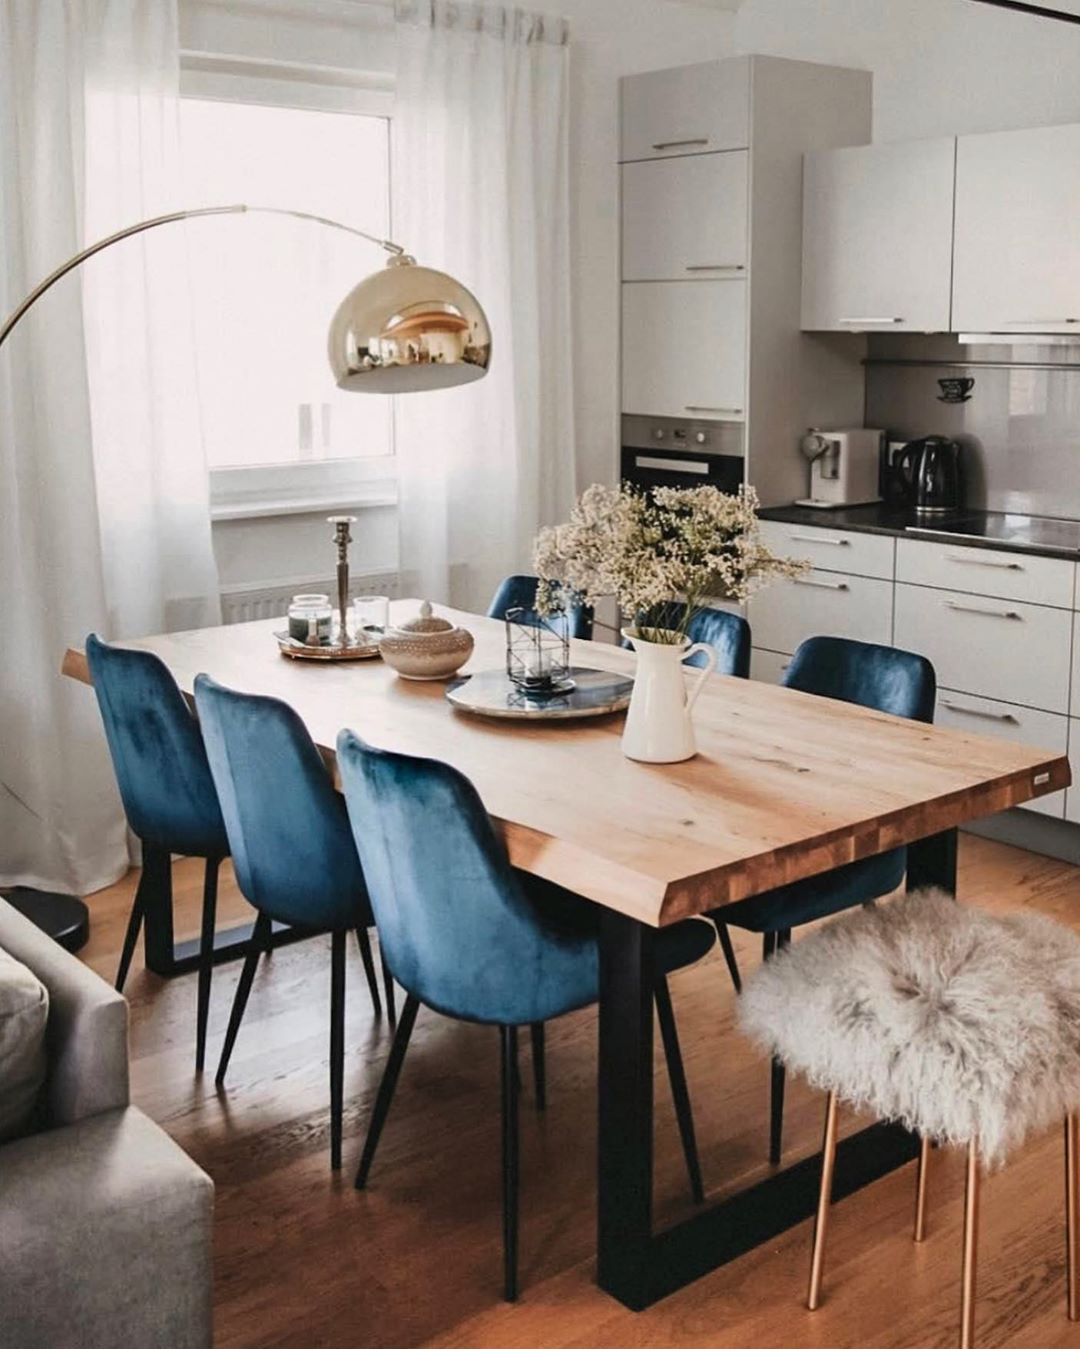 10 Creative Ideas For Dining Room Walls Dining Room Small Cosy Dining Room Dinner Room Cosy dining room decor